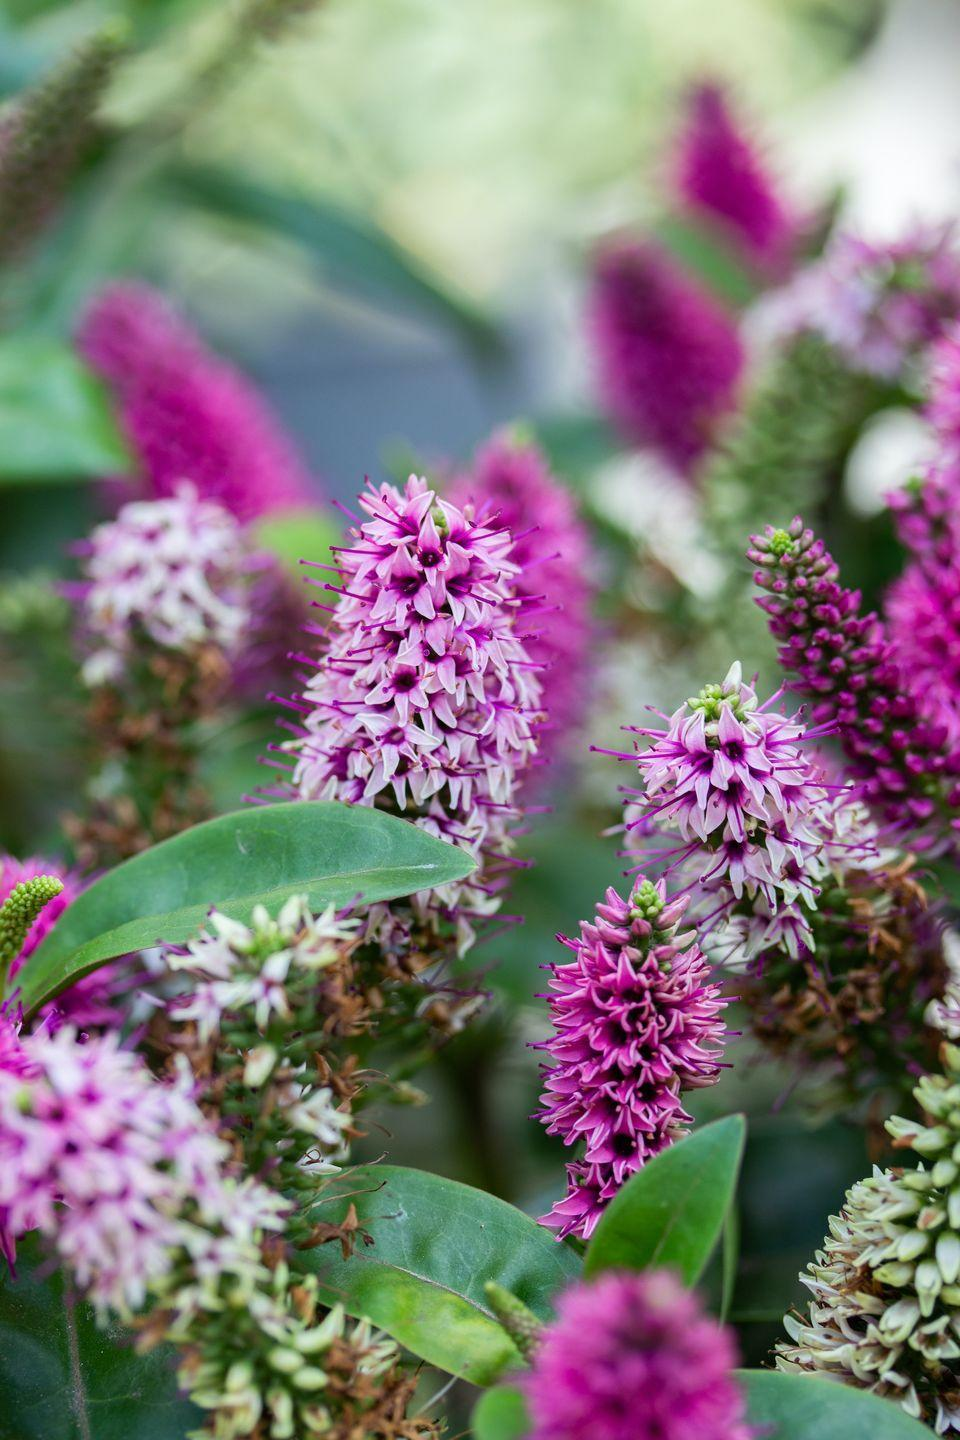 """<p>'It's hard not to be cheered up by bright colours, so inject a splash of colour into your garden this autumn by choosing bold, bright plants,' say Squire's Garden Centre. </p><p><a class=""""link rapid-noclick-resp"""" href=""""https://www.thompson-morgan.com/p/hebe-autumn-glory/WKB5054TM"""" rel=""""nofollow noopener"""" target=""""_blank"""" data-ylk=""""slk:BUY NOW VIA THOMPSON & MORGAN"""">BUY NOW VIA THOMPSON & MORGAN</a></p>"""